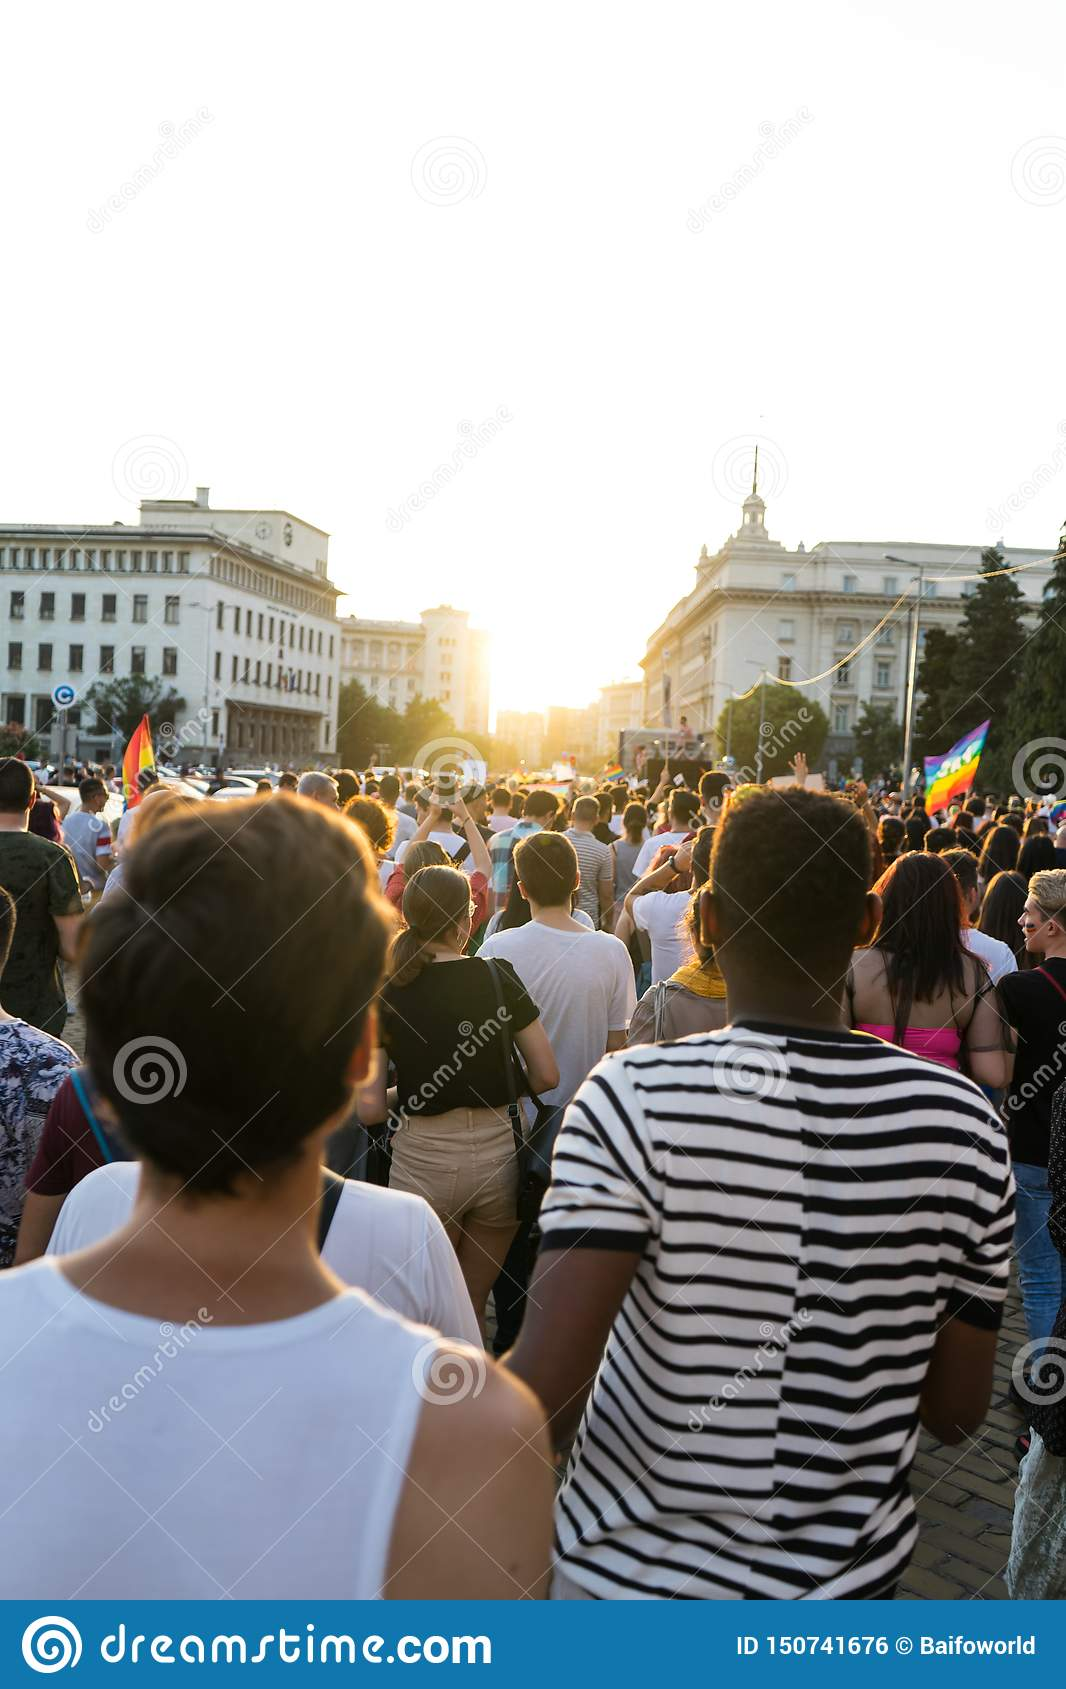 Crowd Waving Rainbow Flags At Pride Parade. People Attending a Gay pride. March with gays and lesbians in the street of Sofia,